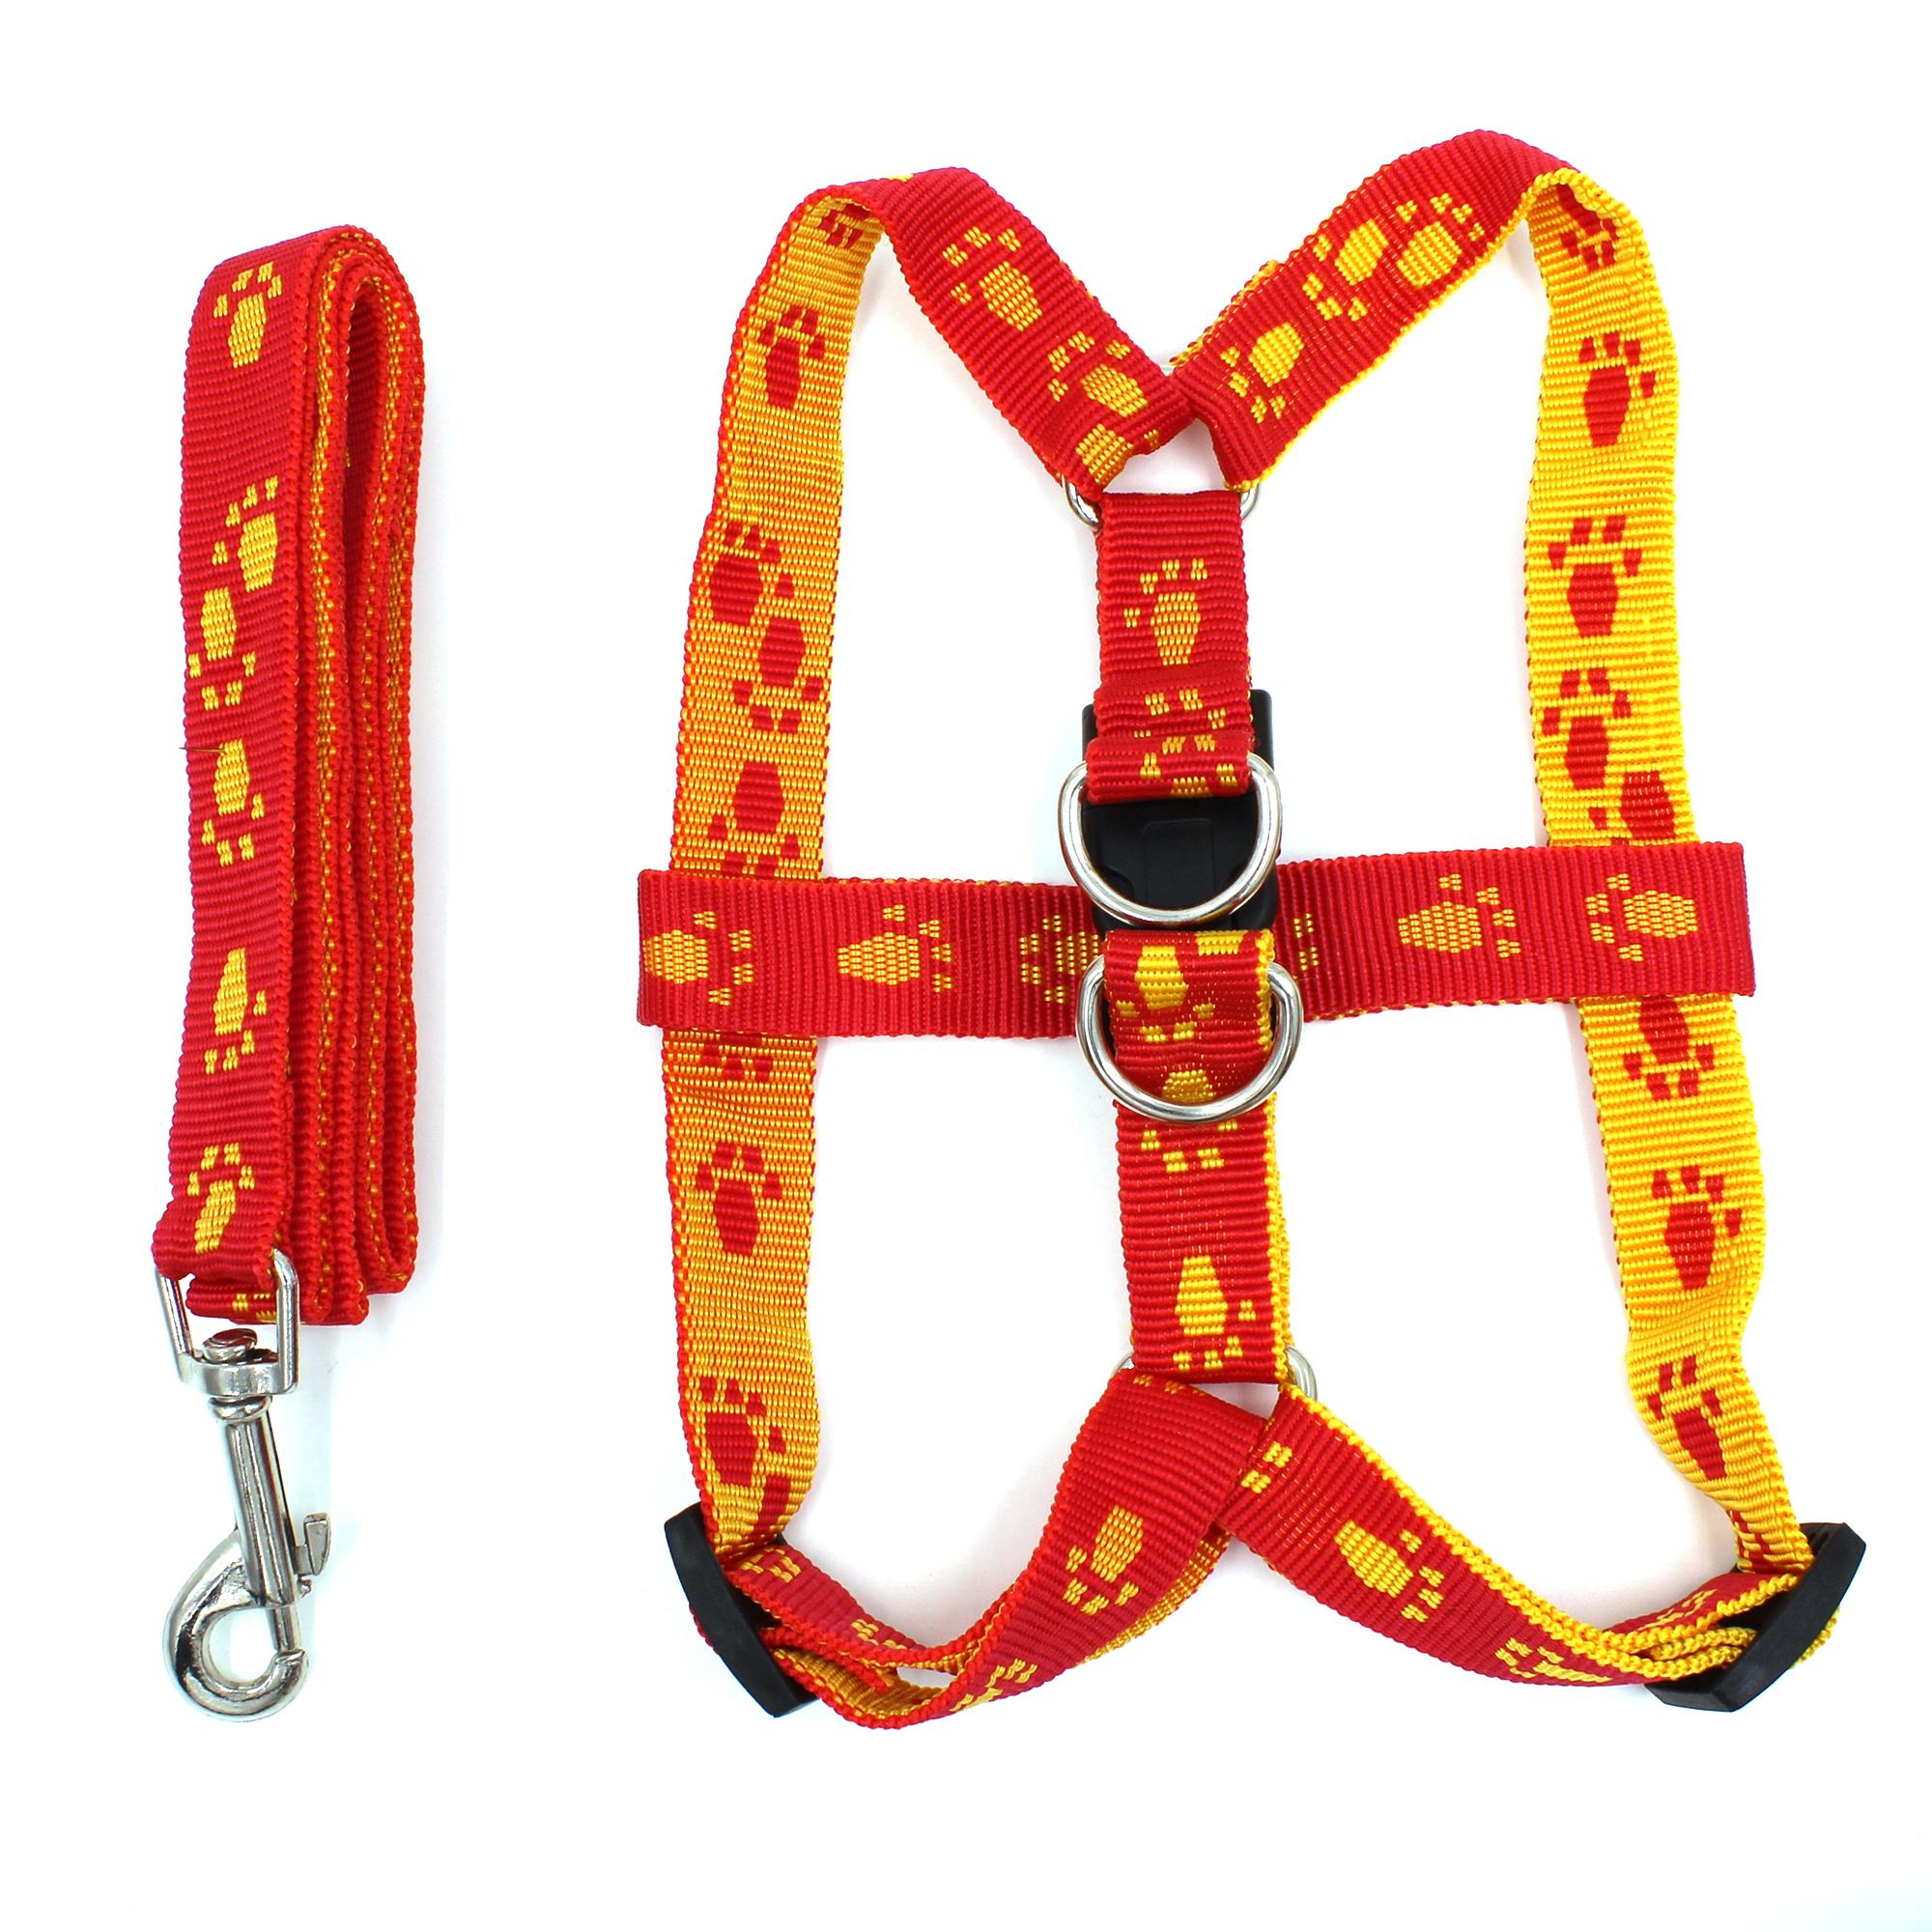 Digisoria Paws Pattern Dog Leash Harness (red/yellow) By Digisoria